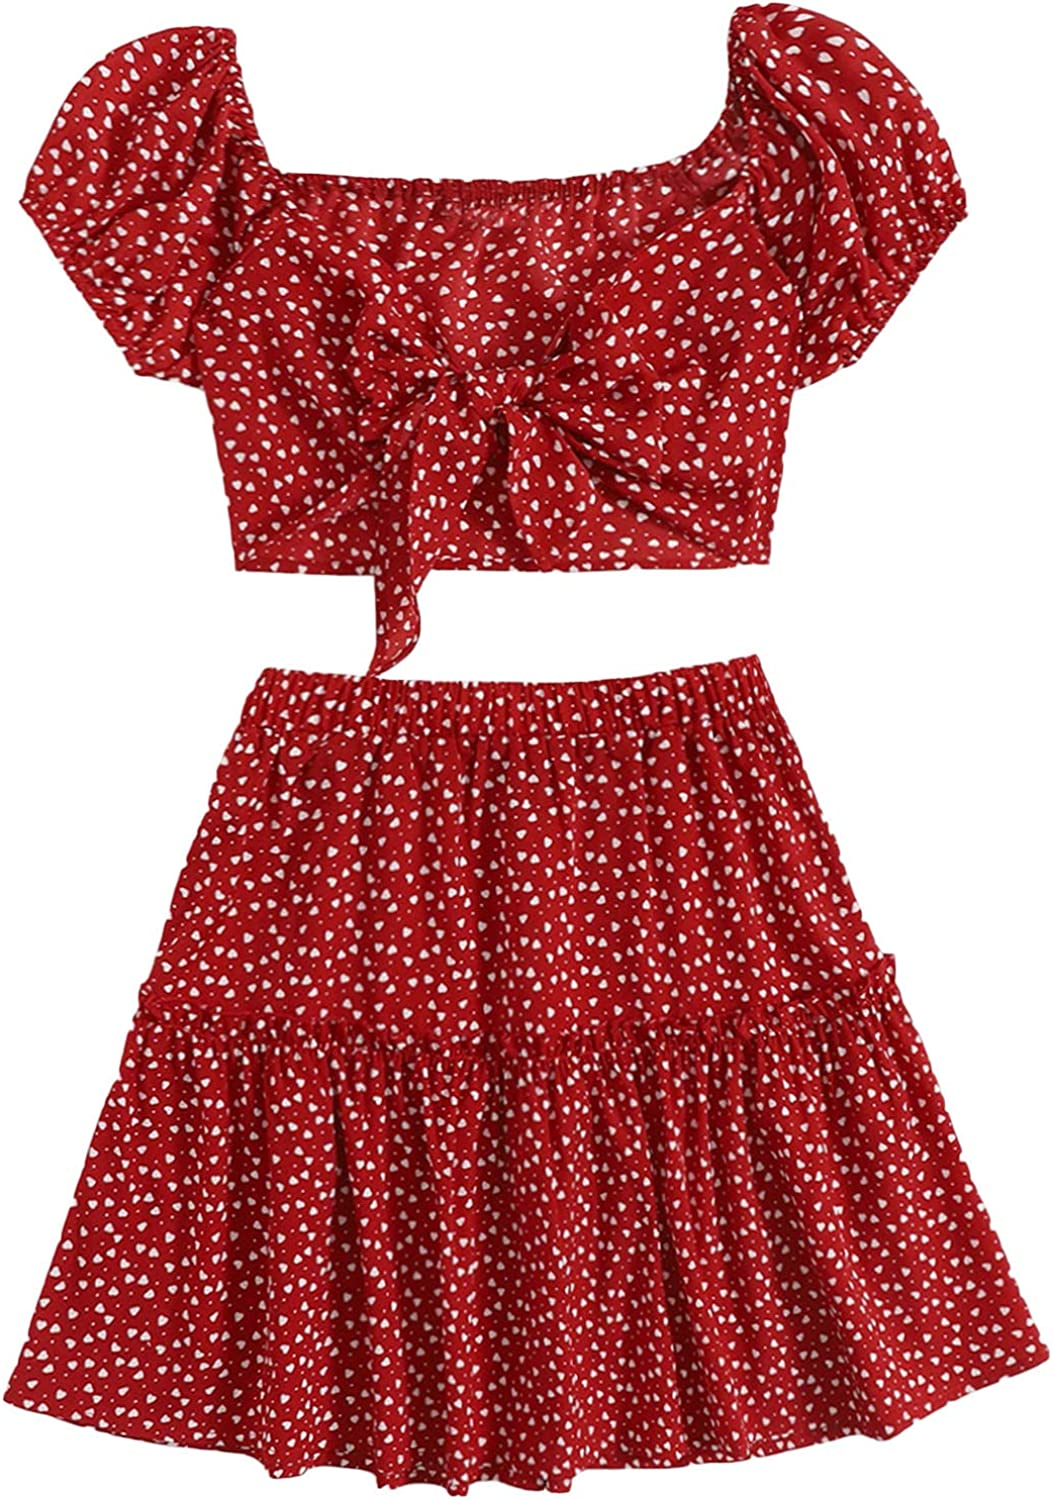 SheIn Women's Floral Tie Front Puff Short Sleeve Crop Top and Flared Mini Skirt Set Outfits